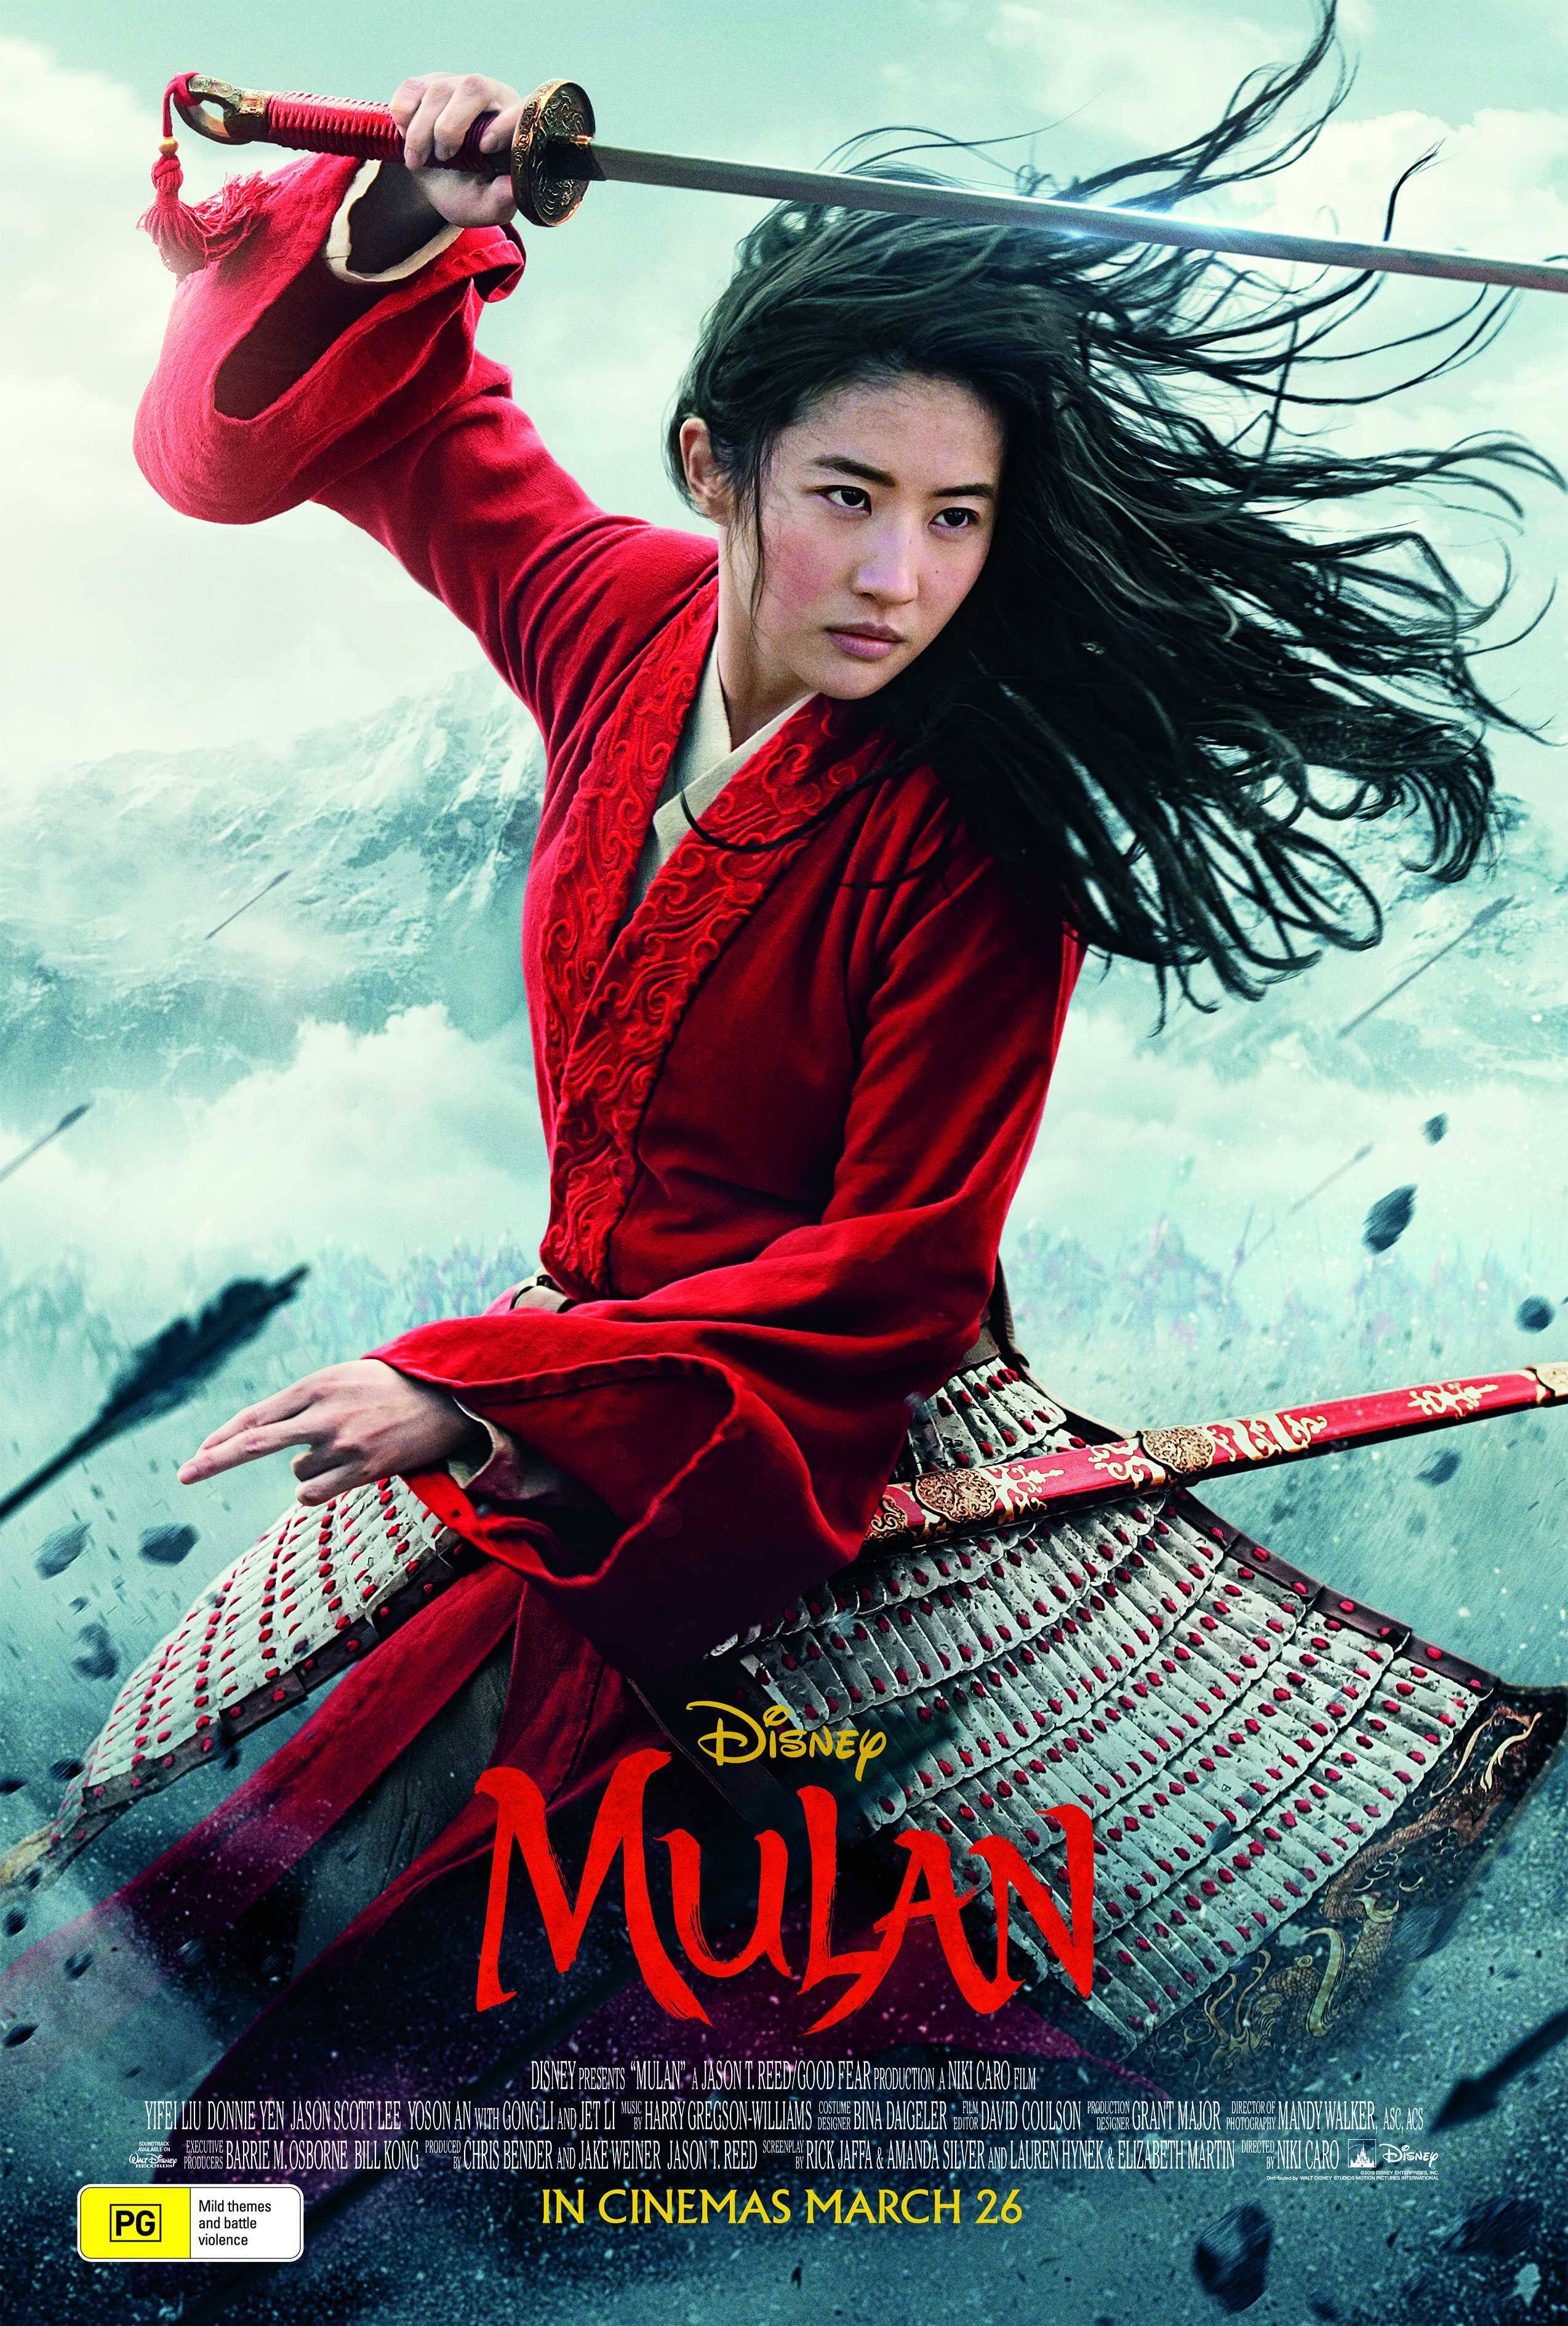 Mulan - special advance screenings!